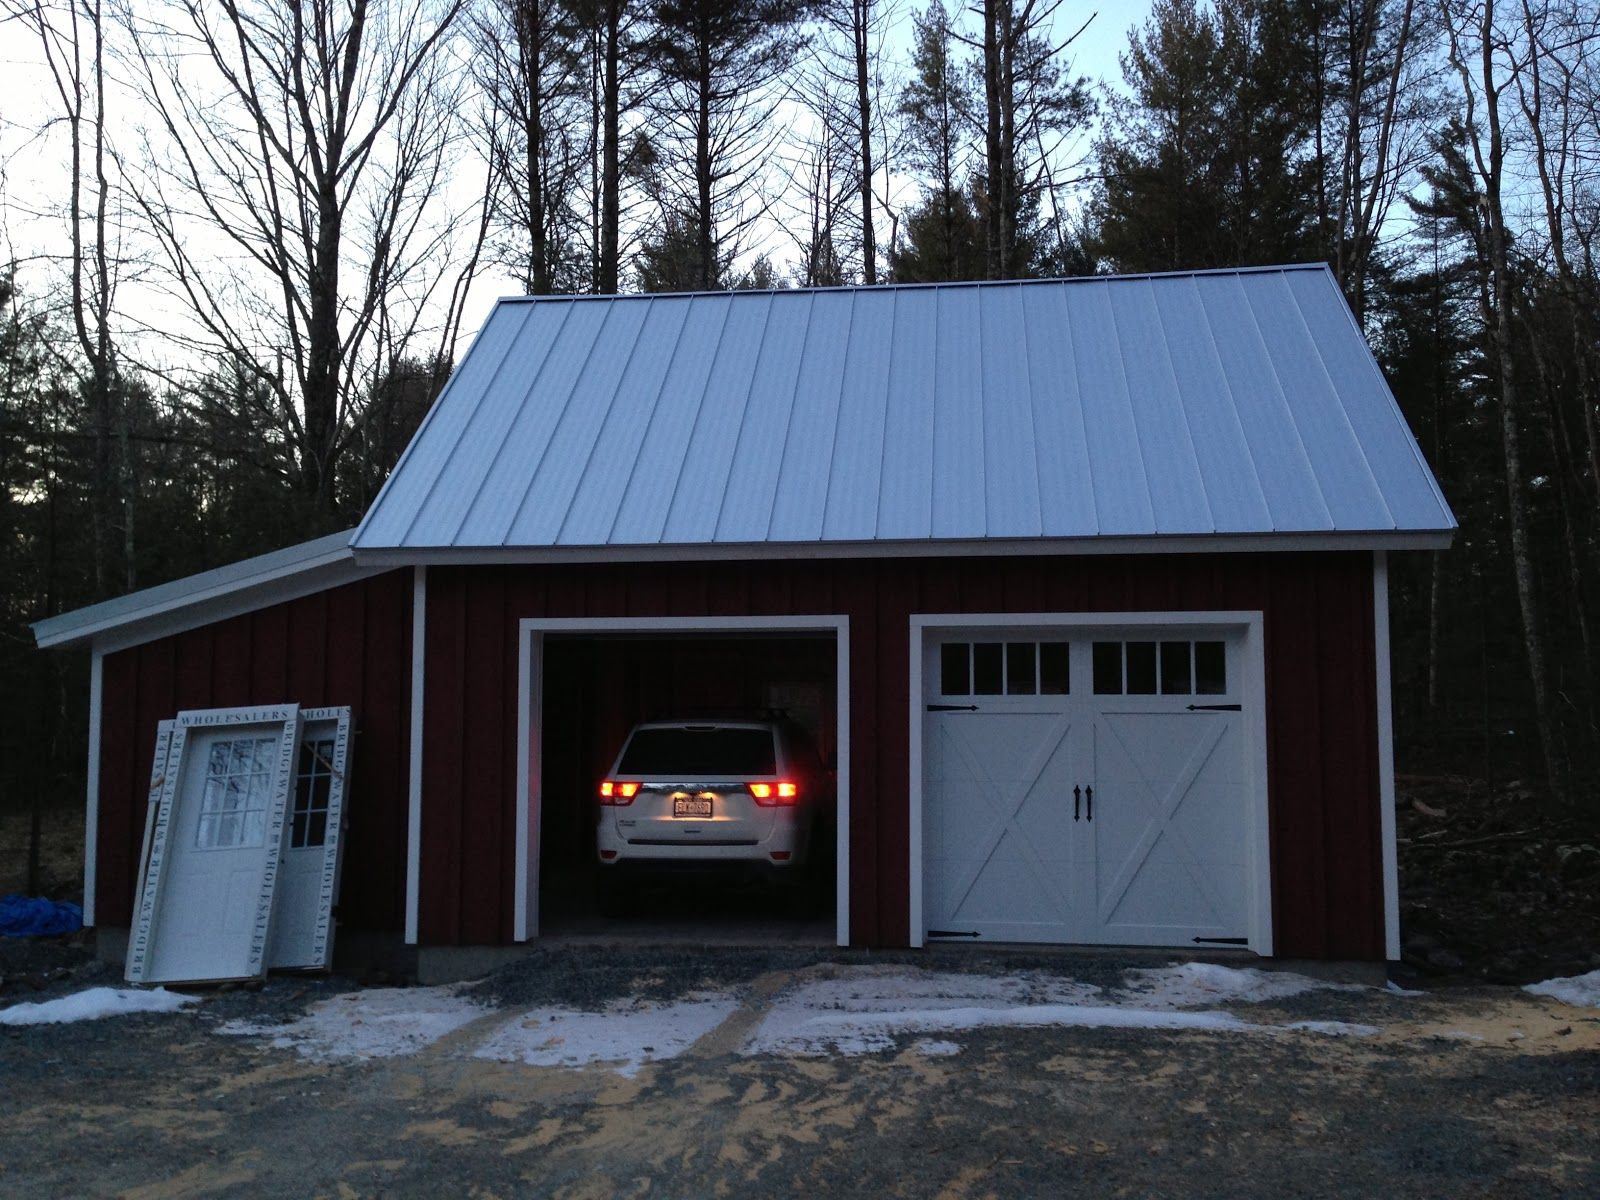 sullivan county ulster county real estate catskill farms wide ribbed metal roof vertical board and batton siding stained barn red yes seriously that s the name cross buck garage doors